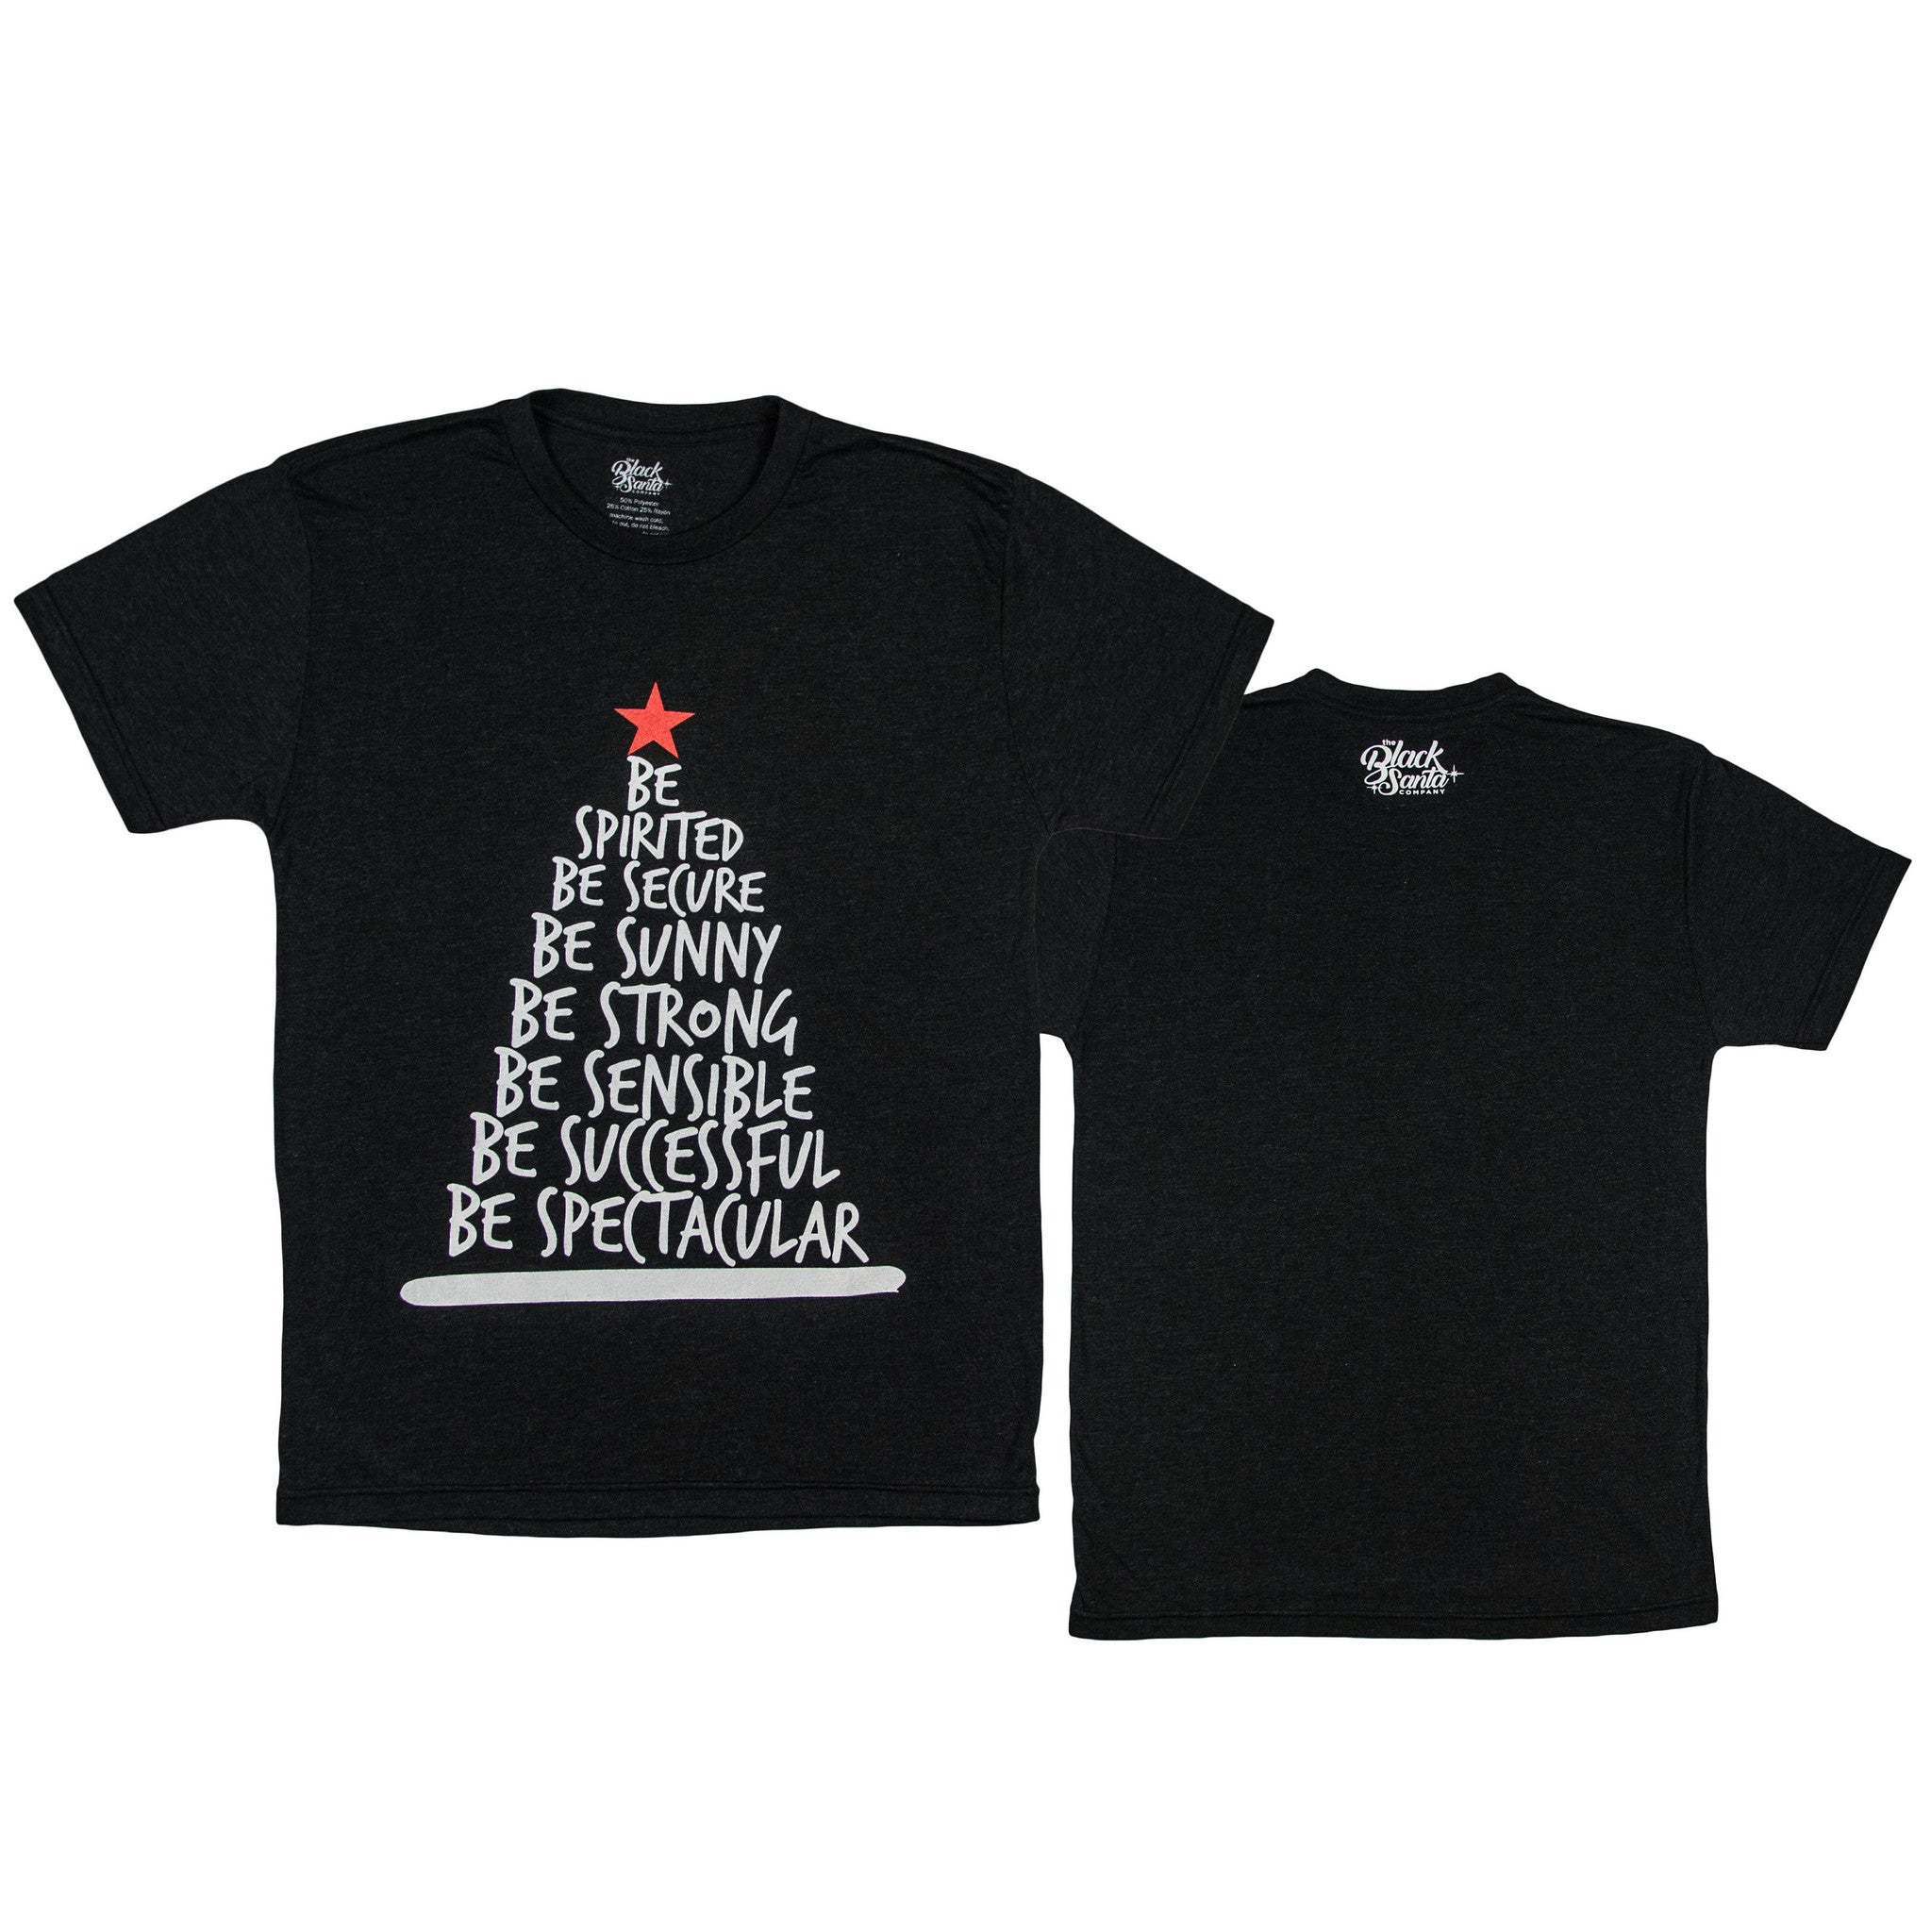 Black Santa Be Tree Tee - Vintage Black